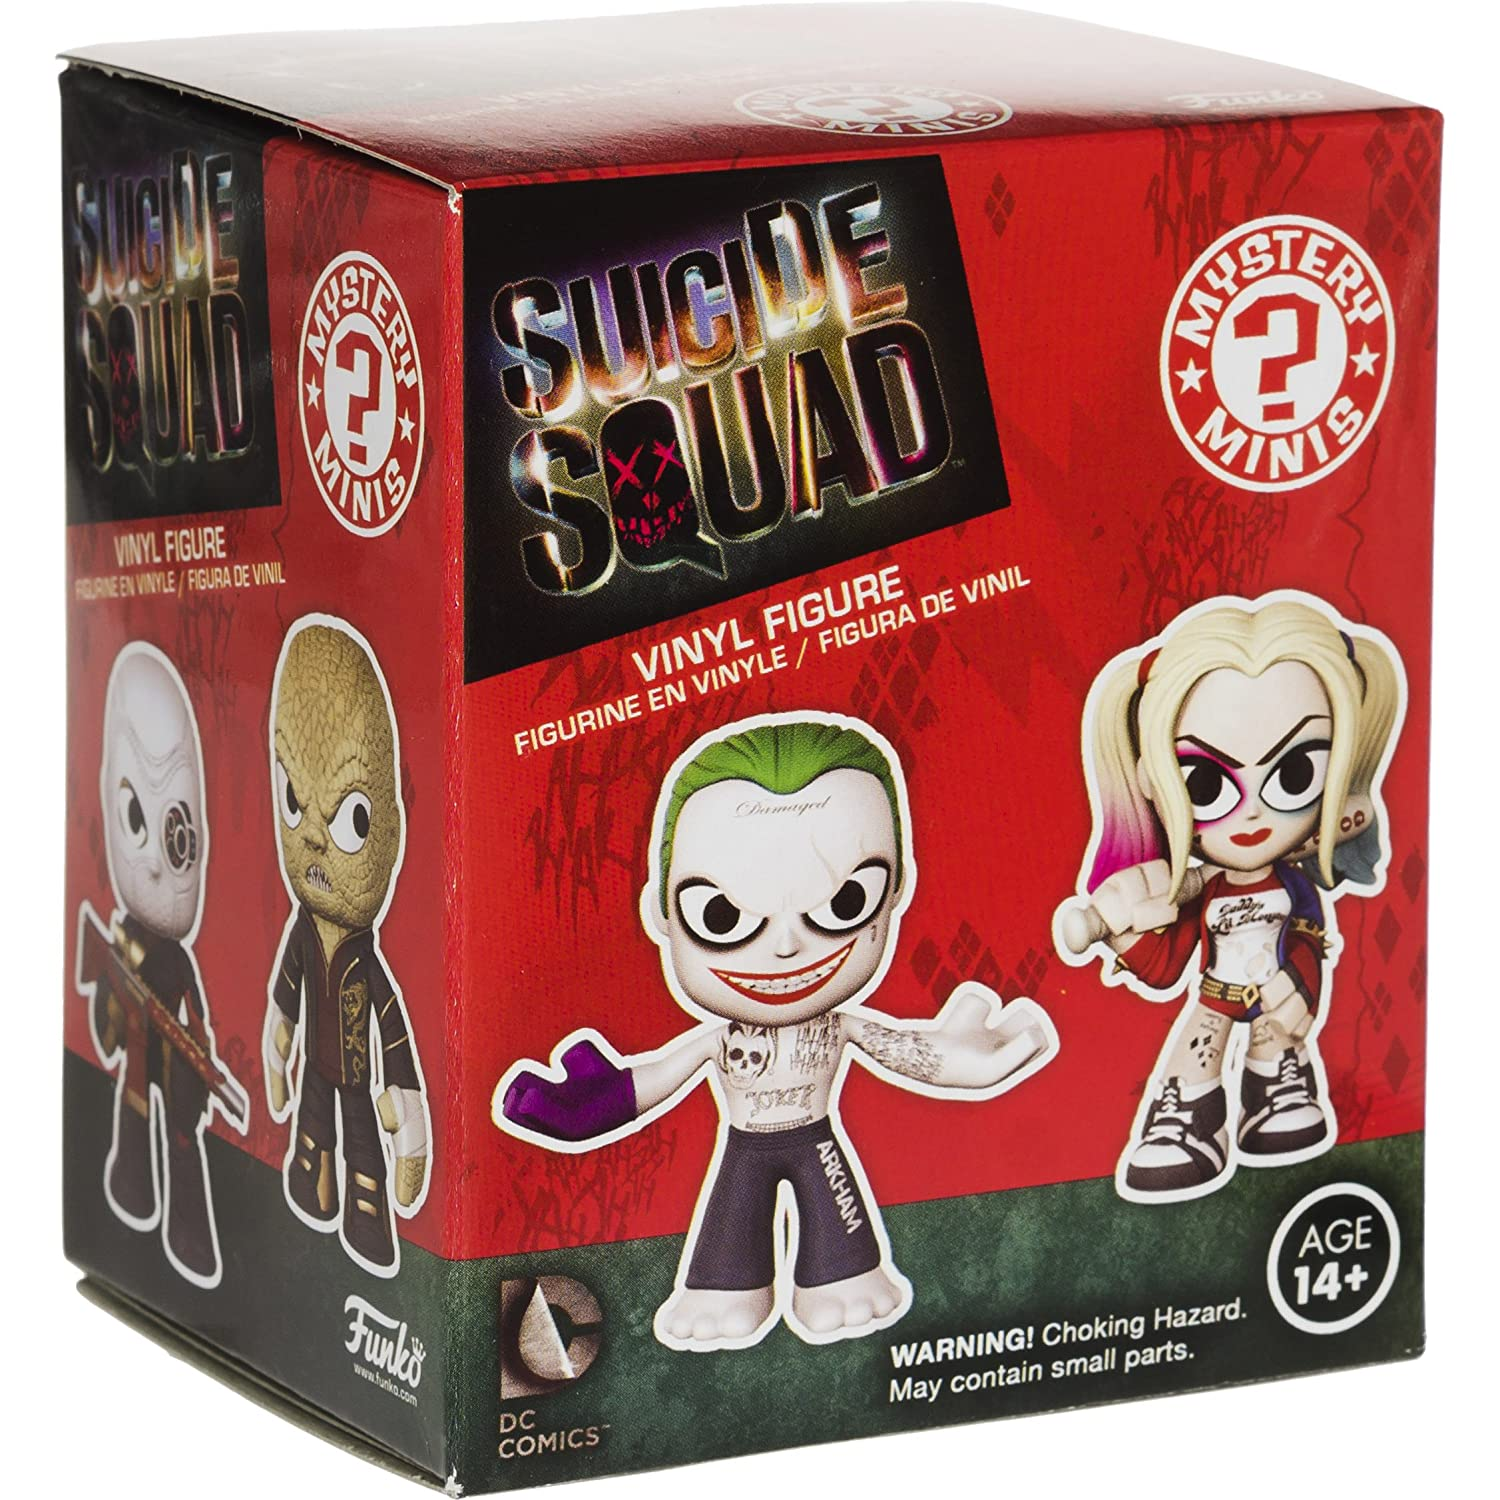 1 FREE Official DC Trading Card Bundle 091149 BCC948R74 Katana: ~2.6 Suicide Squad x Funko Mystery Minis Vinyl Figure